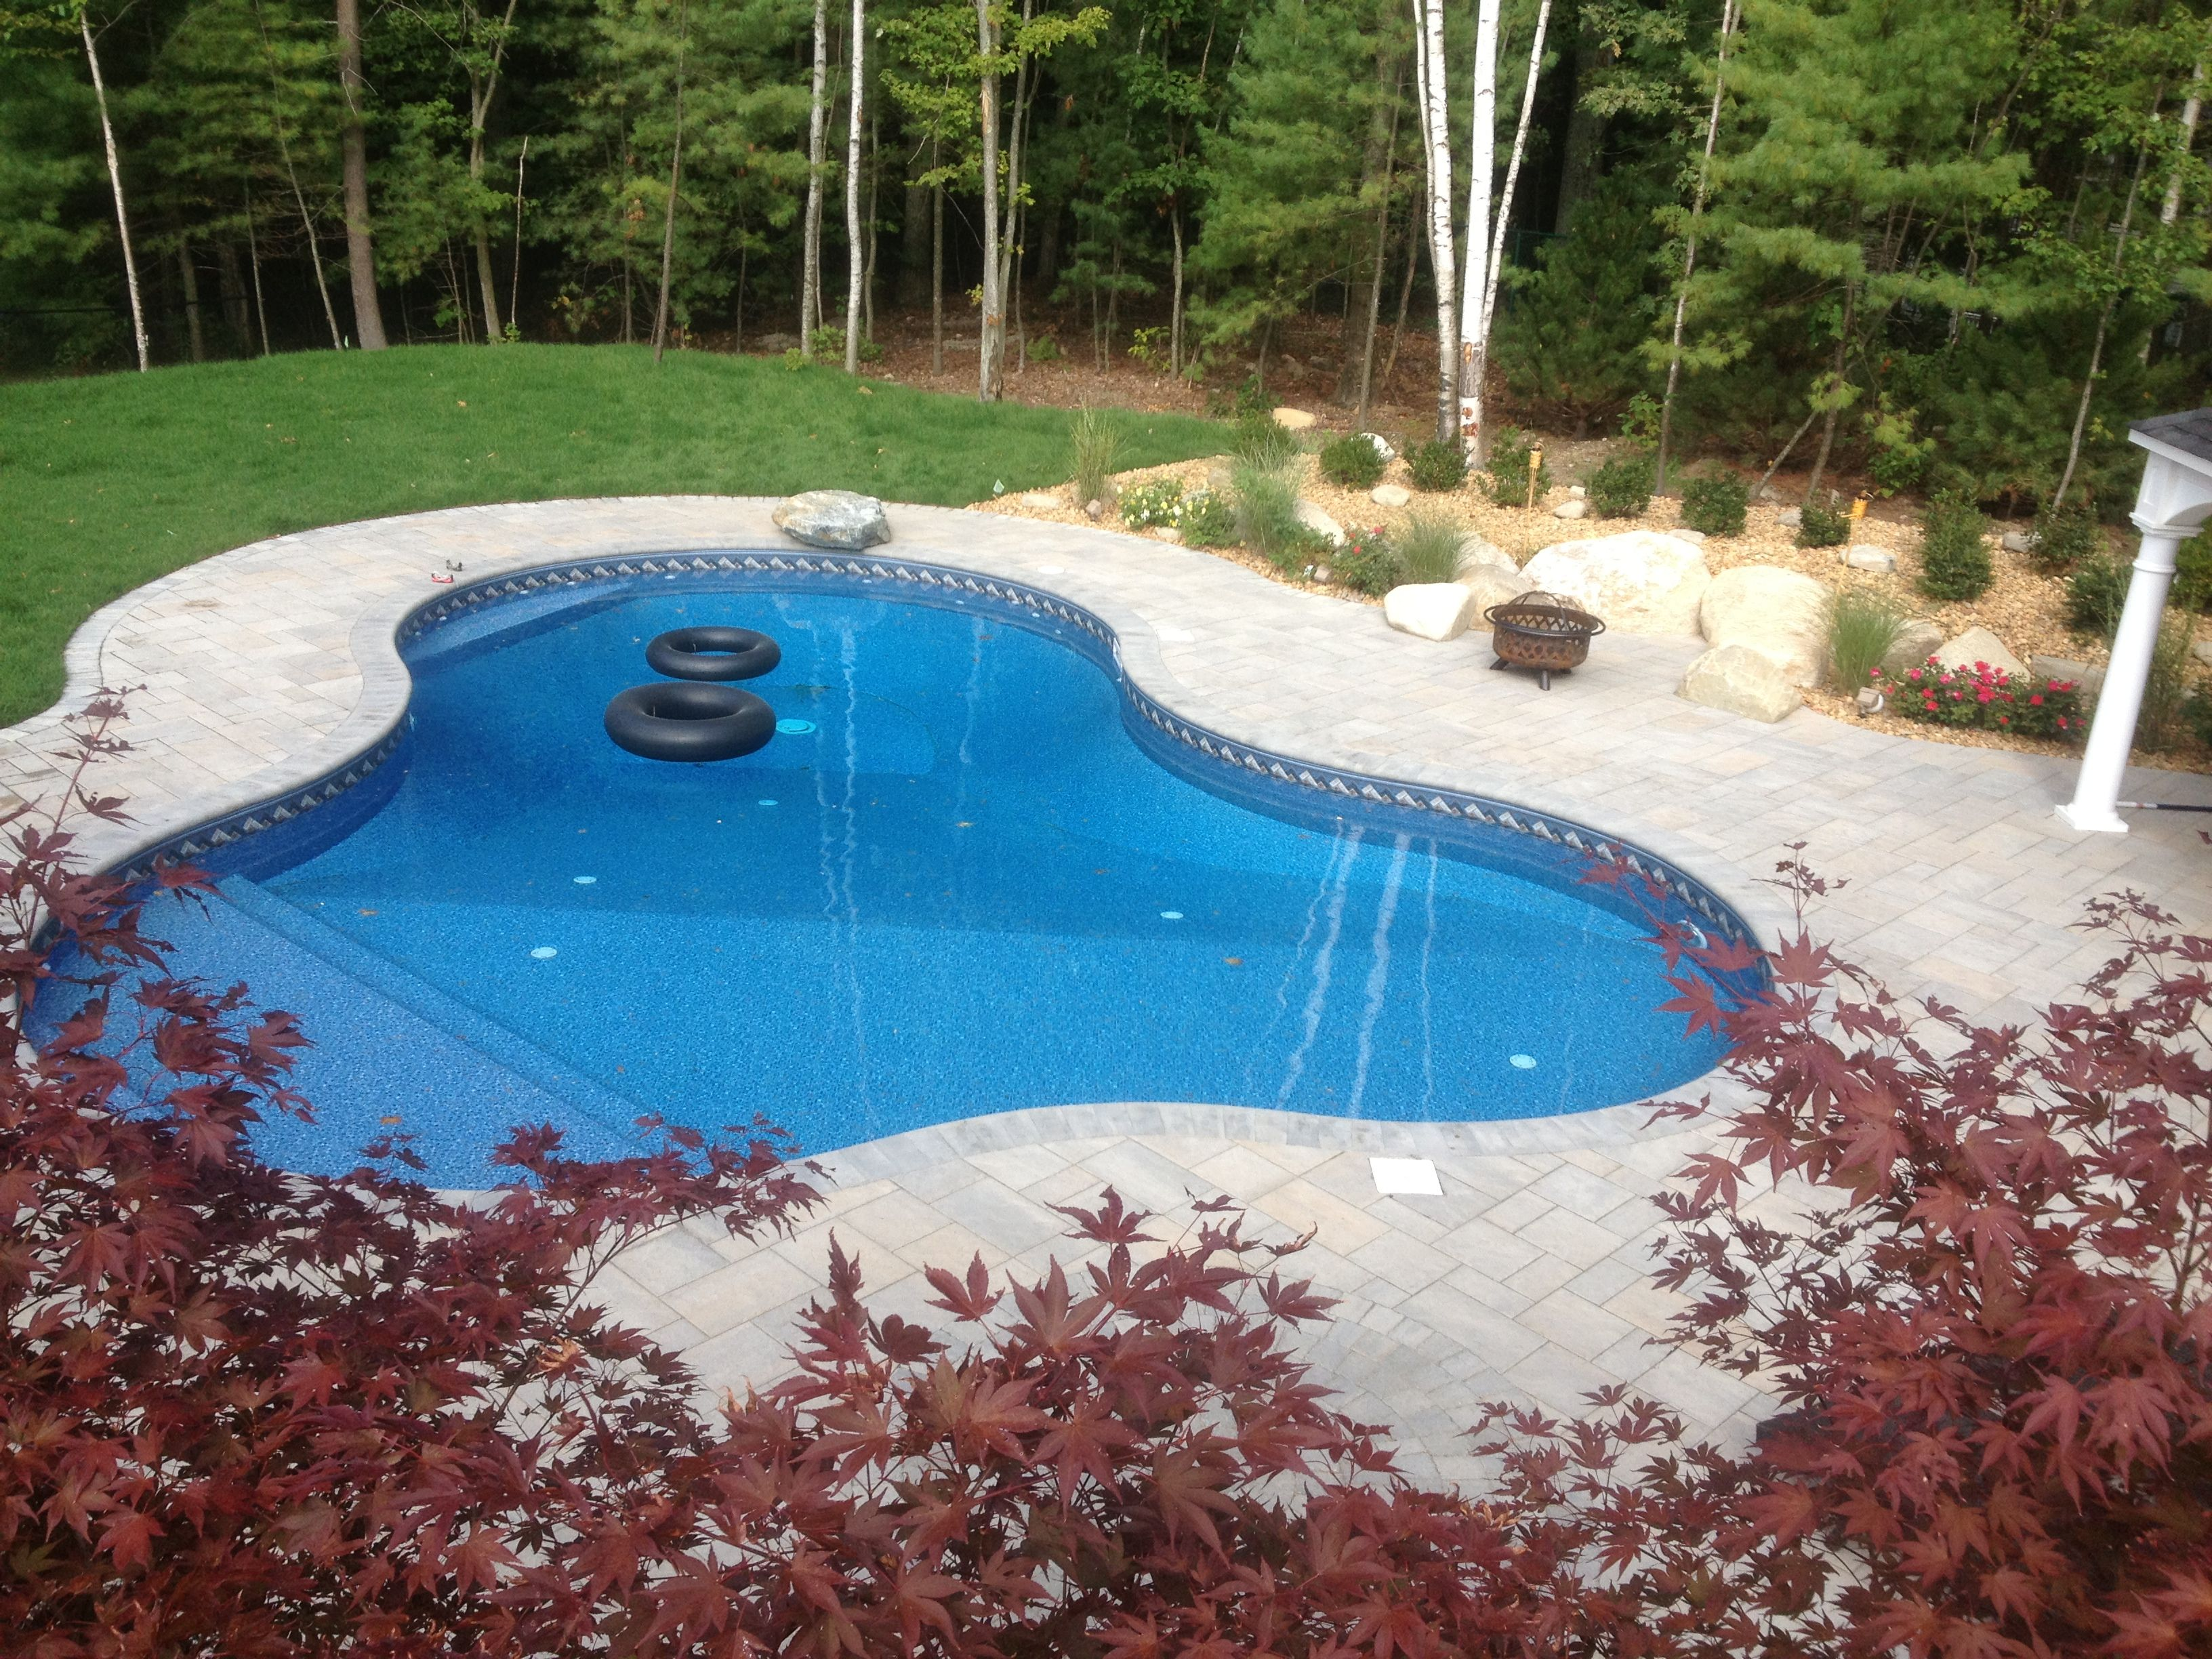 Massachusetts Inground Pools Designed And Built With Innovation And Cutting  Edge Technology In Mind. We Push The Limits Of Vinyl Liner In Ground Pools  In MA